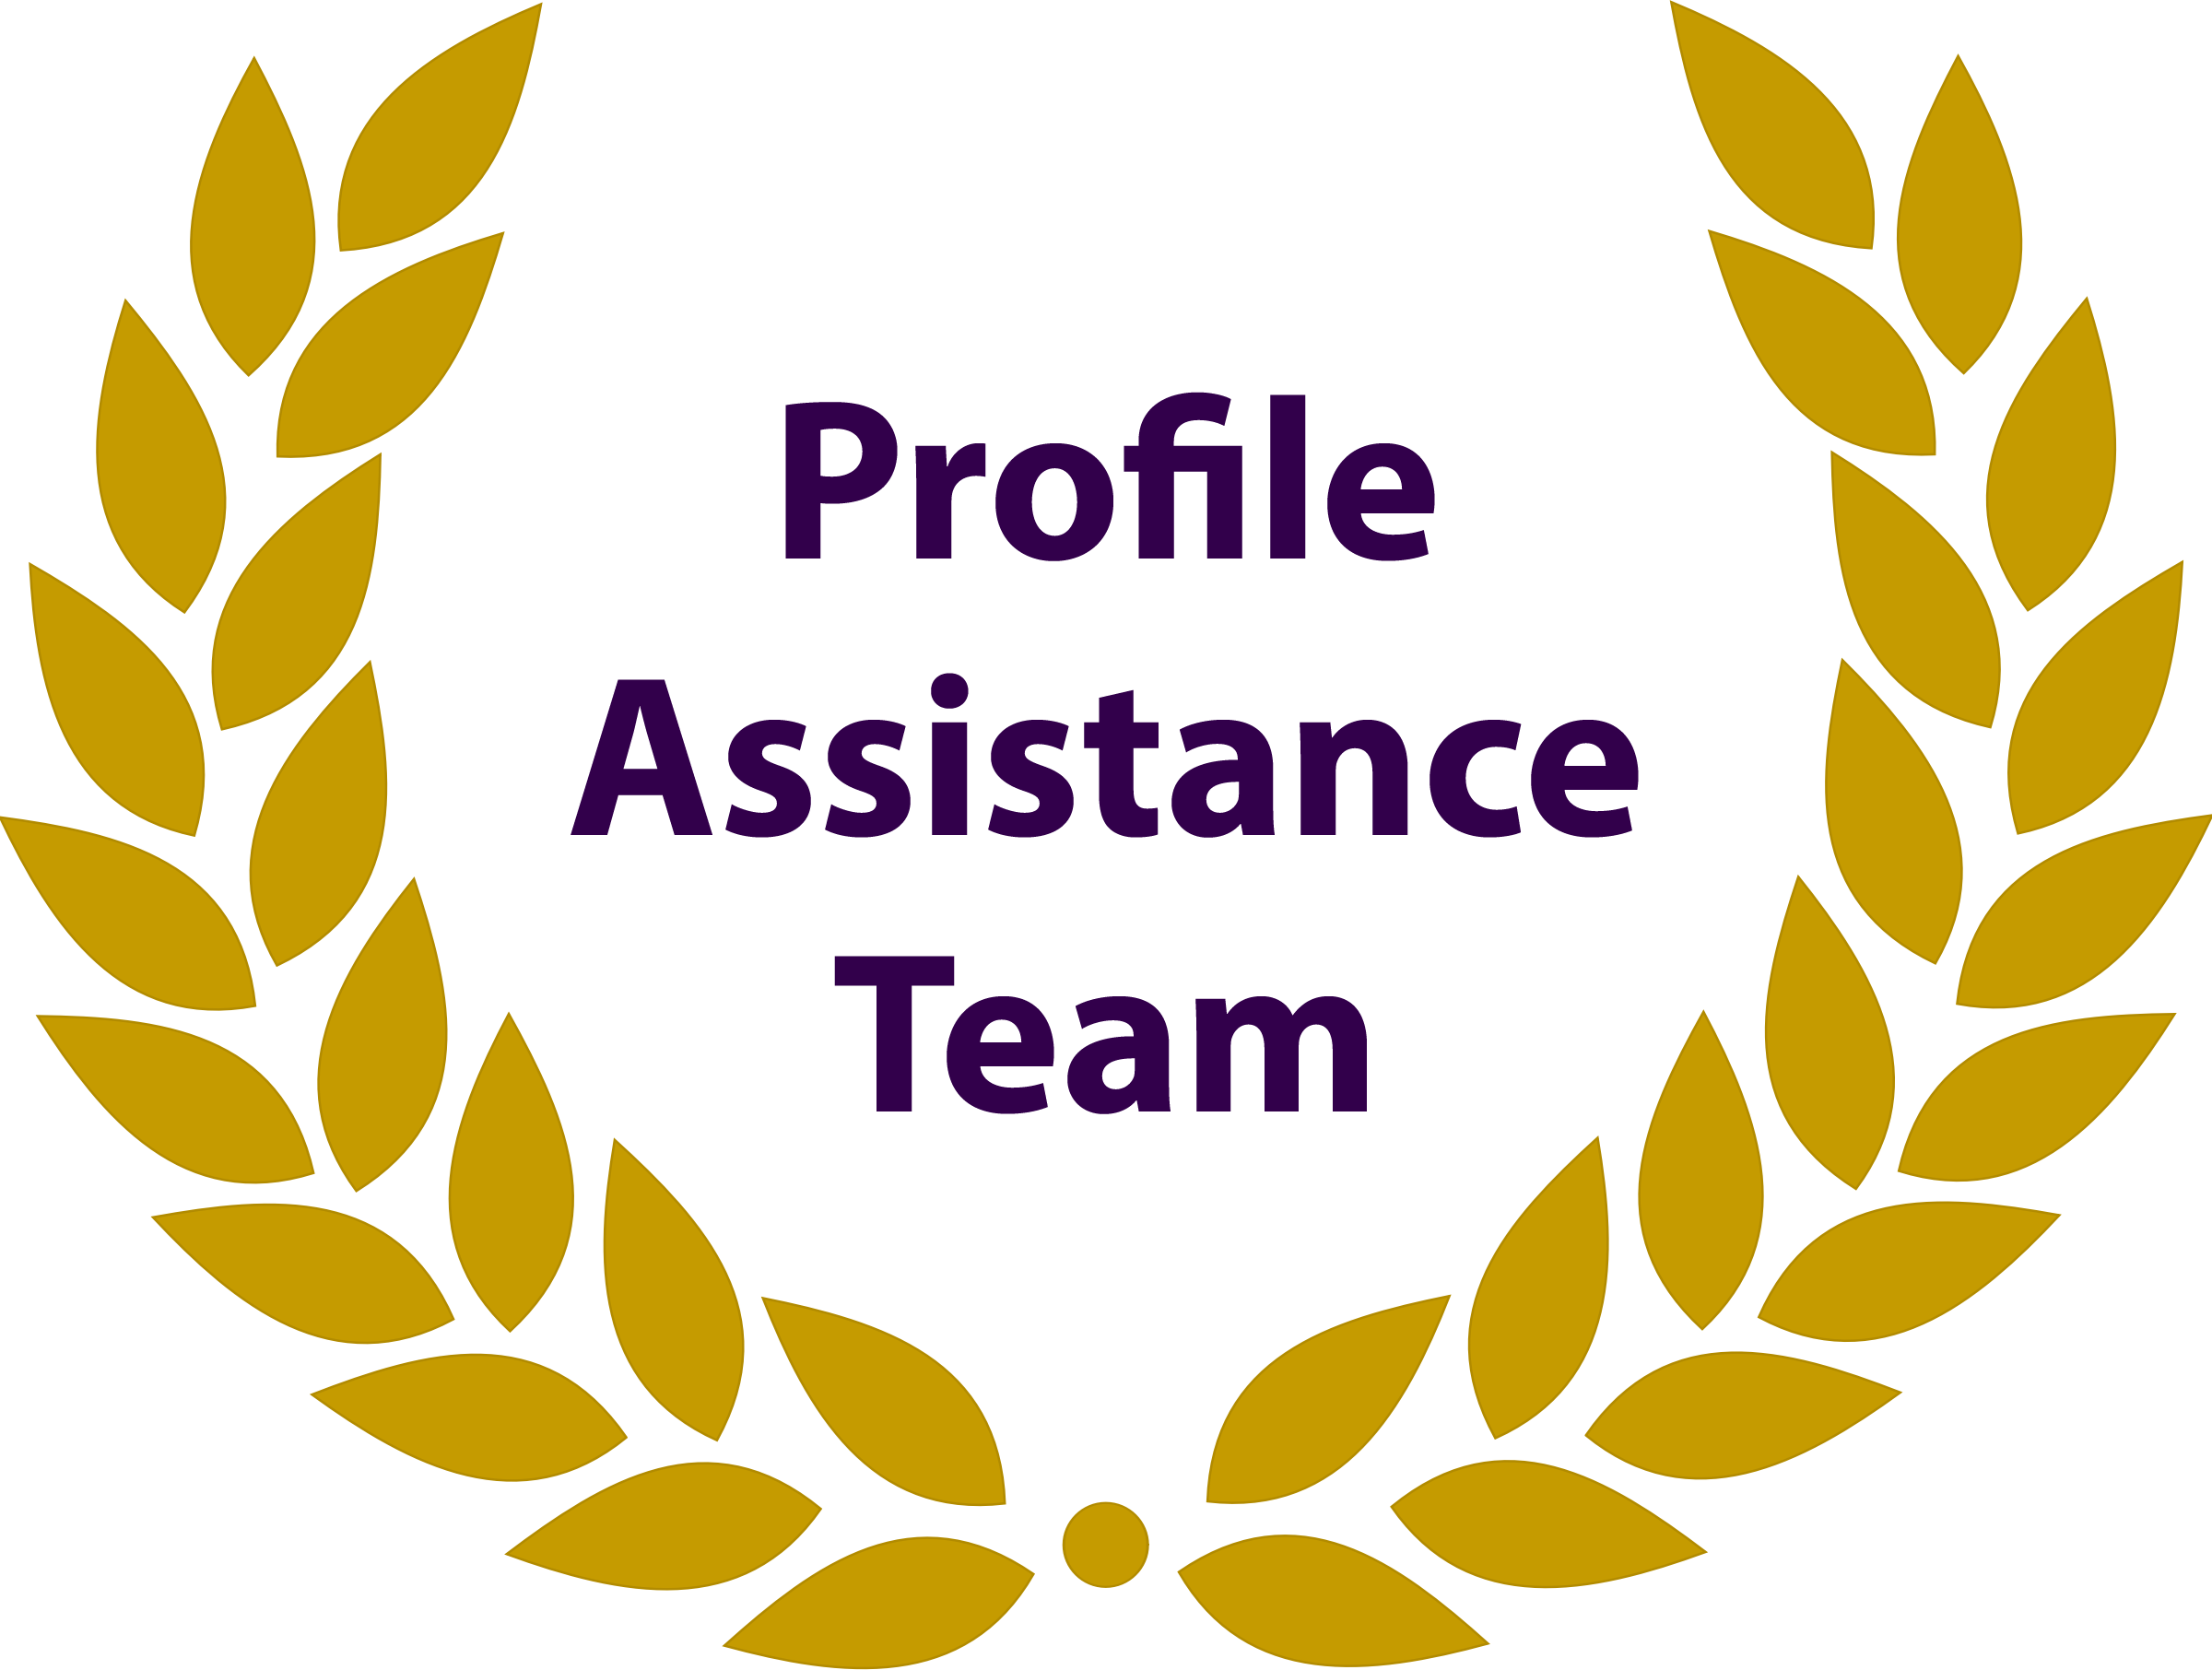 TWS Volunteer Profile Assistance Team (VPA)